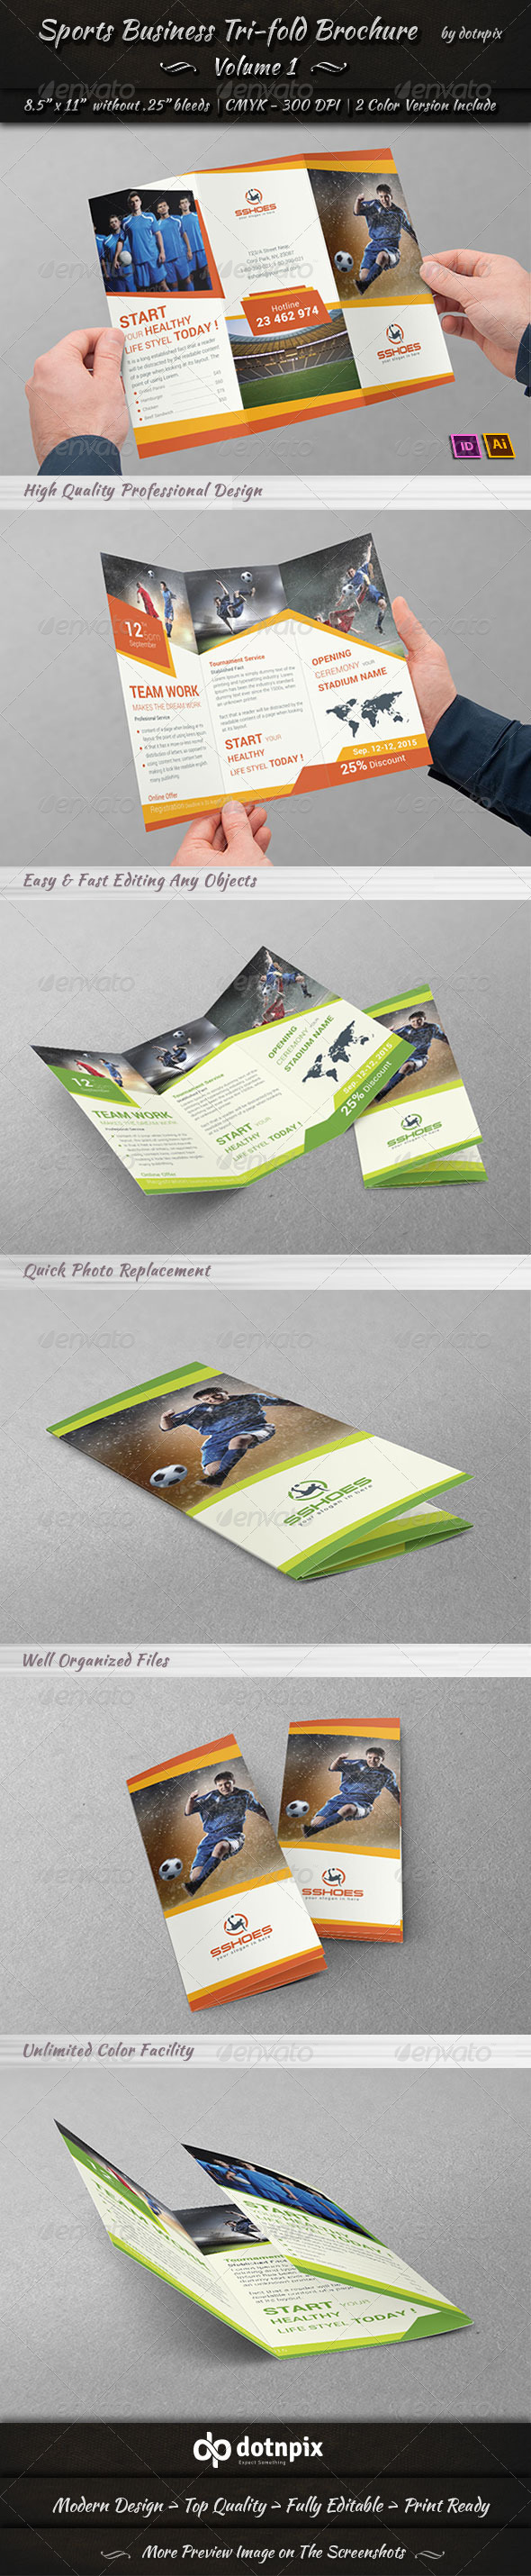 GraphicRiver Sports Business TriFold Brochure Volume 1 7108623